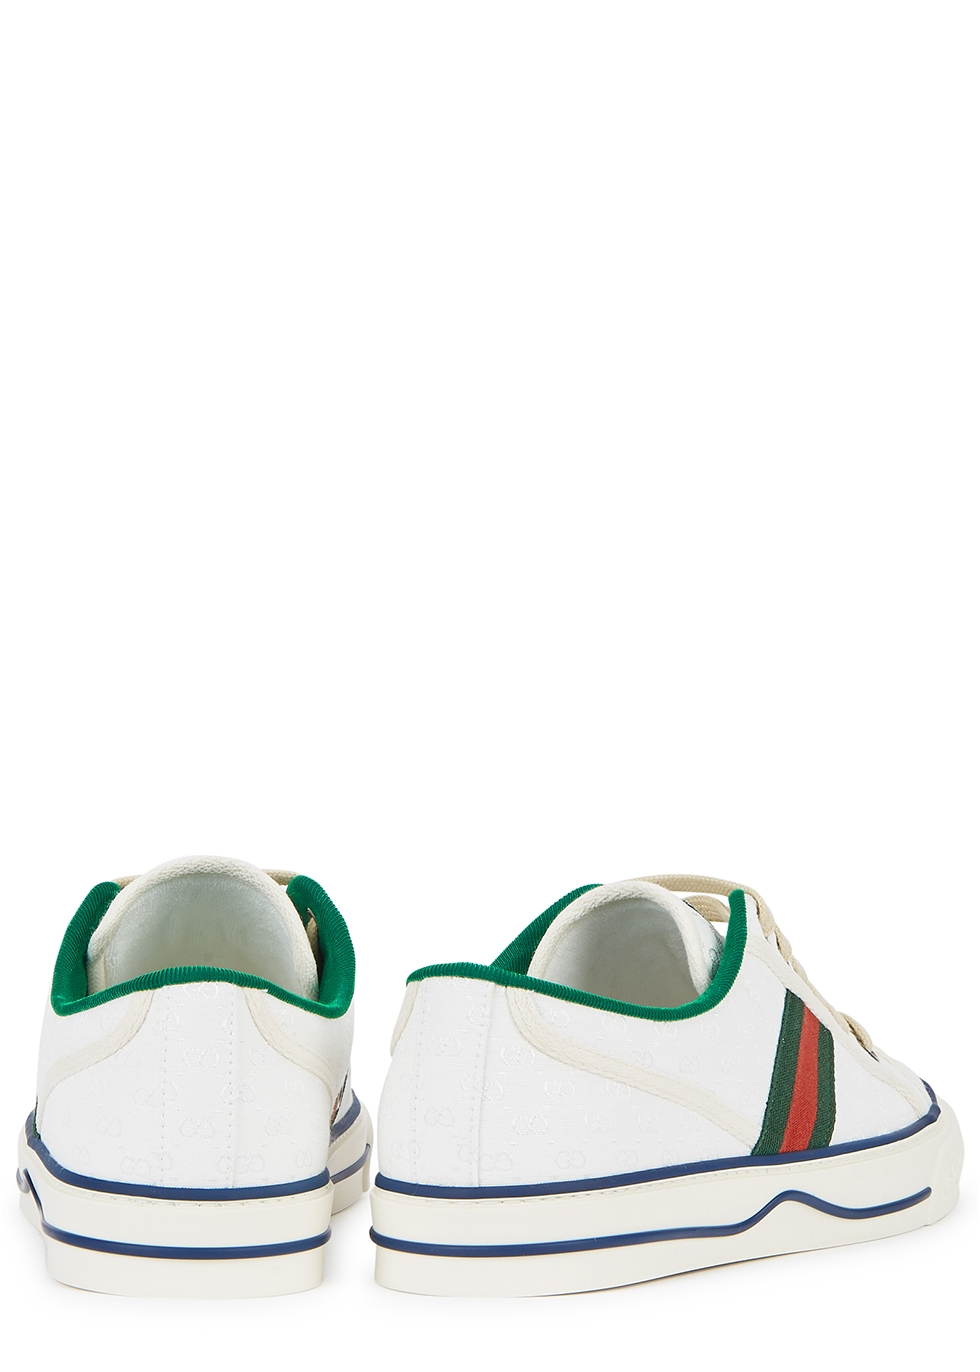 Gucci Tennis 1977 white canvas sneakers